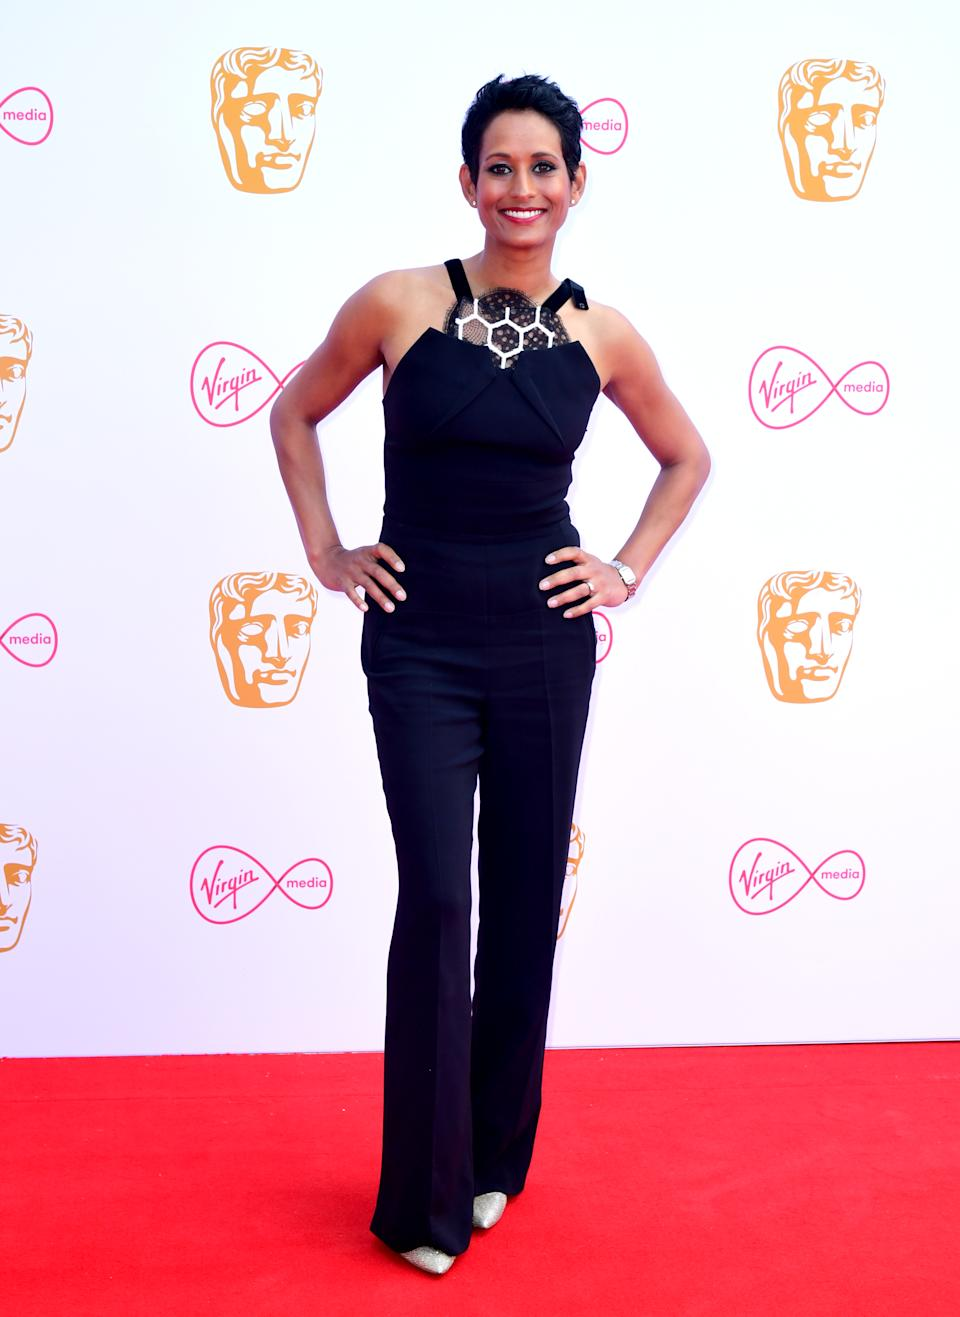 Naga Munchetty attending the Virgin Media BAFTA TV awards, held at the Royal Festival Hall in London. (Photo by Ian West/PA Images via Getty Images)